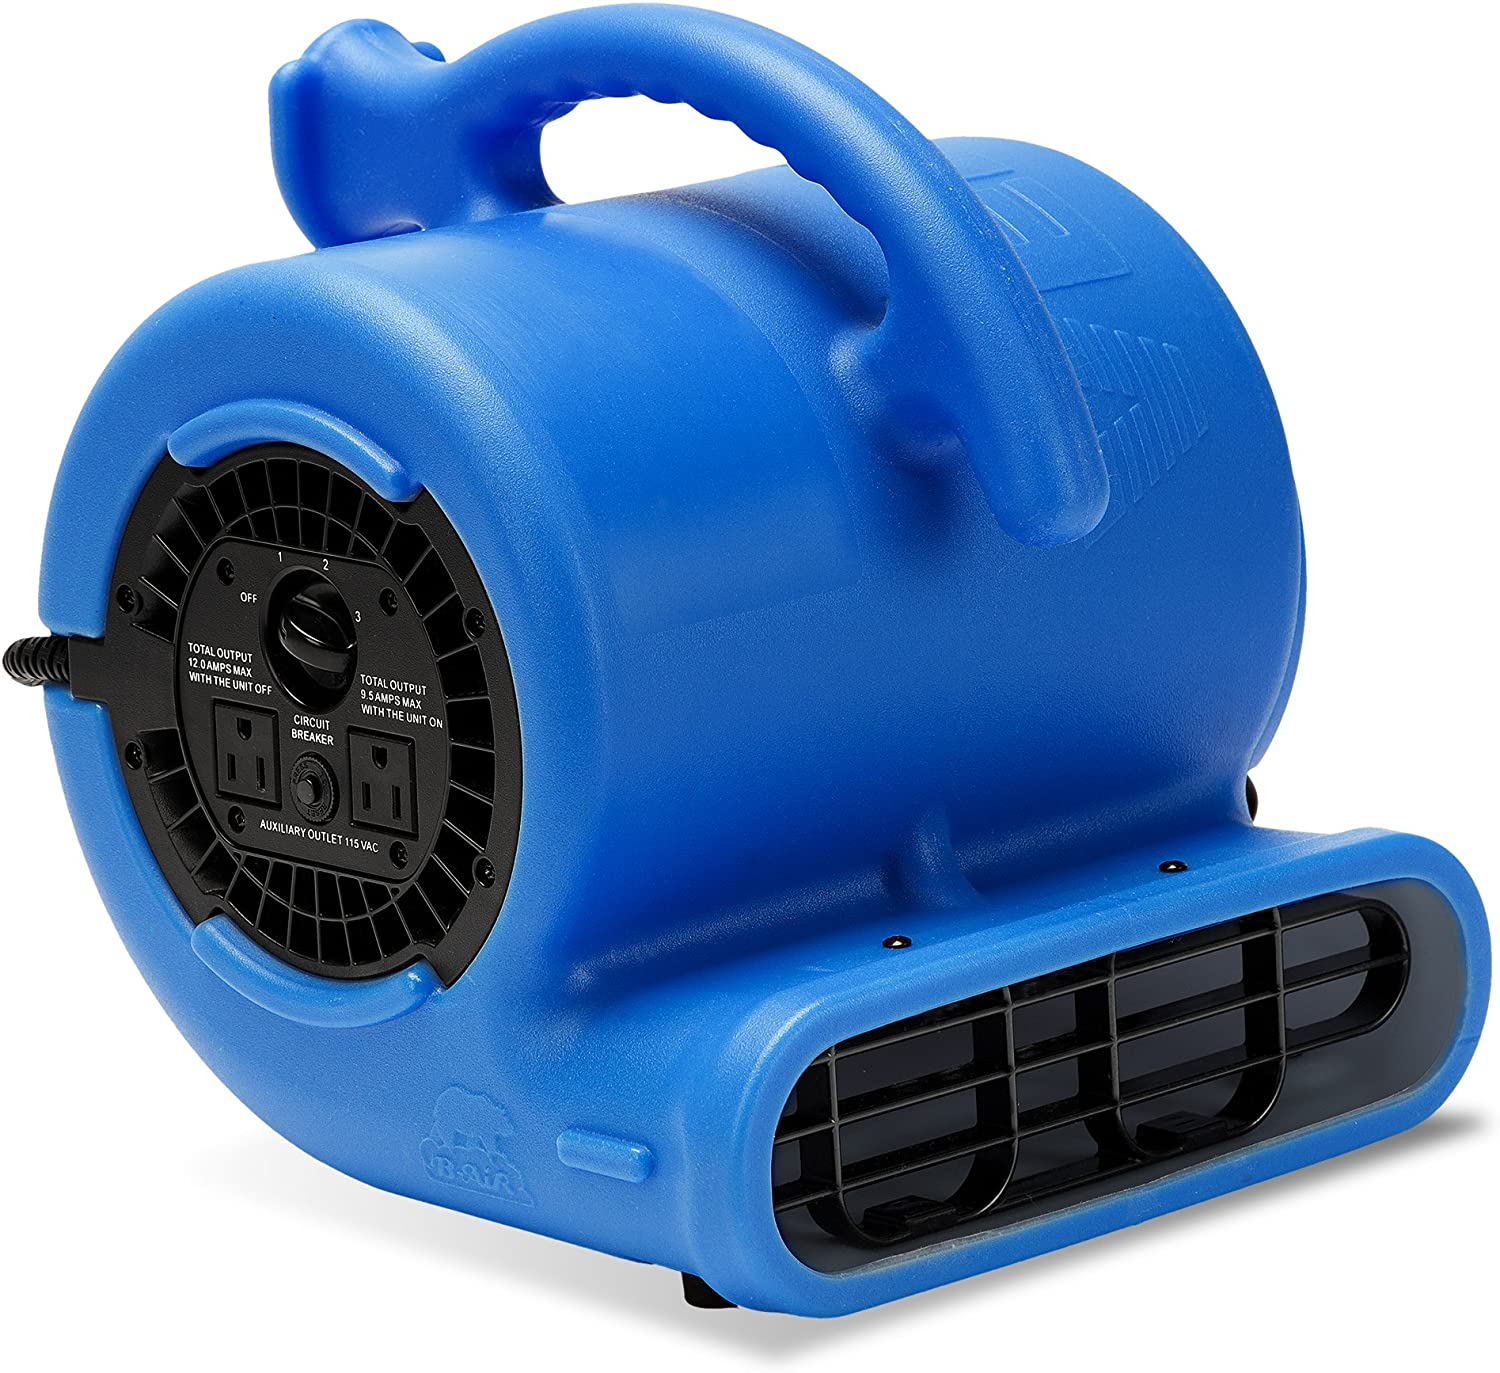 B-Air VP-25 1 4 HP 900 CFM Air Mover for Water Damage Restoration Equipment Carpet Dryer Floor Blower Fan Home and Plumbing Use, Blue